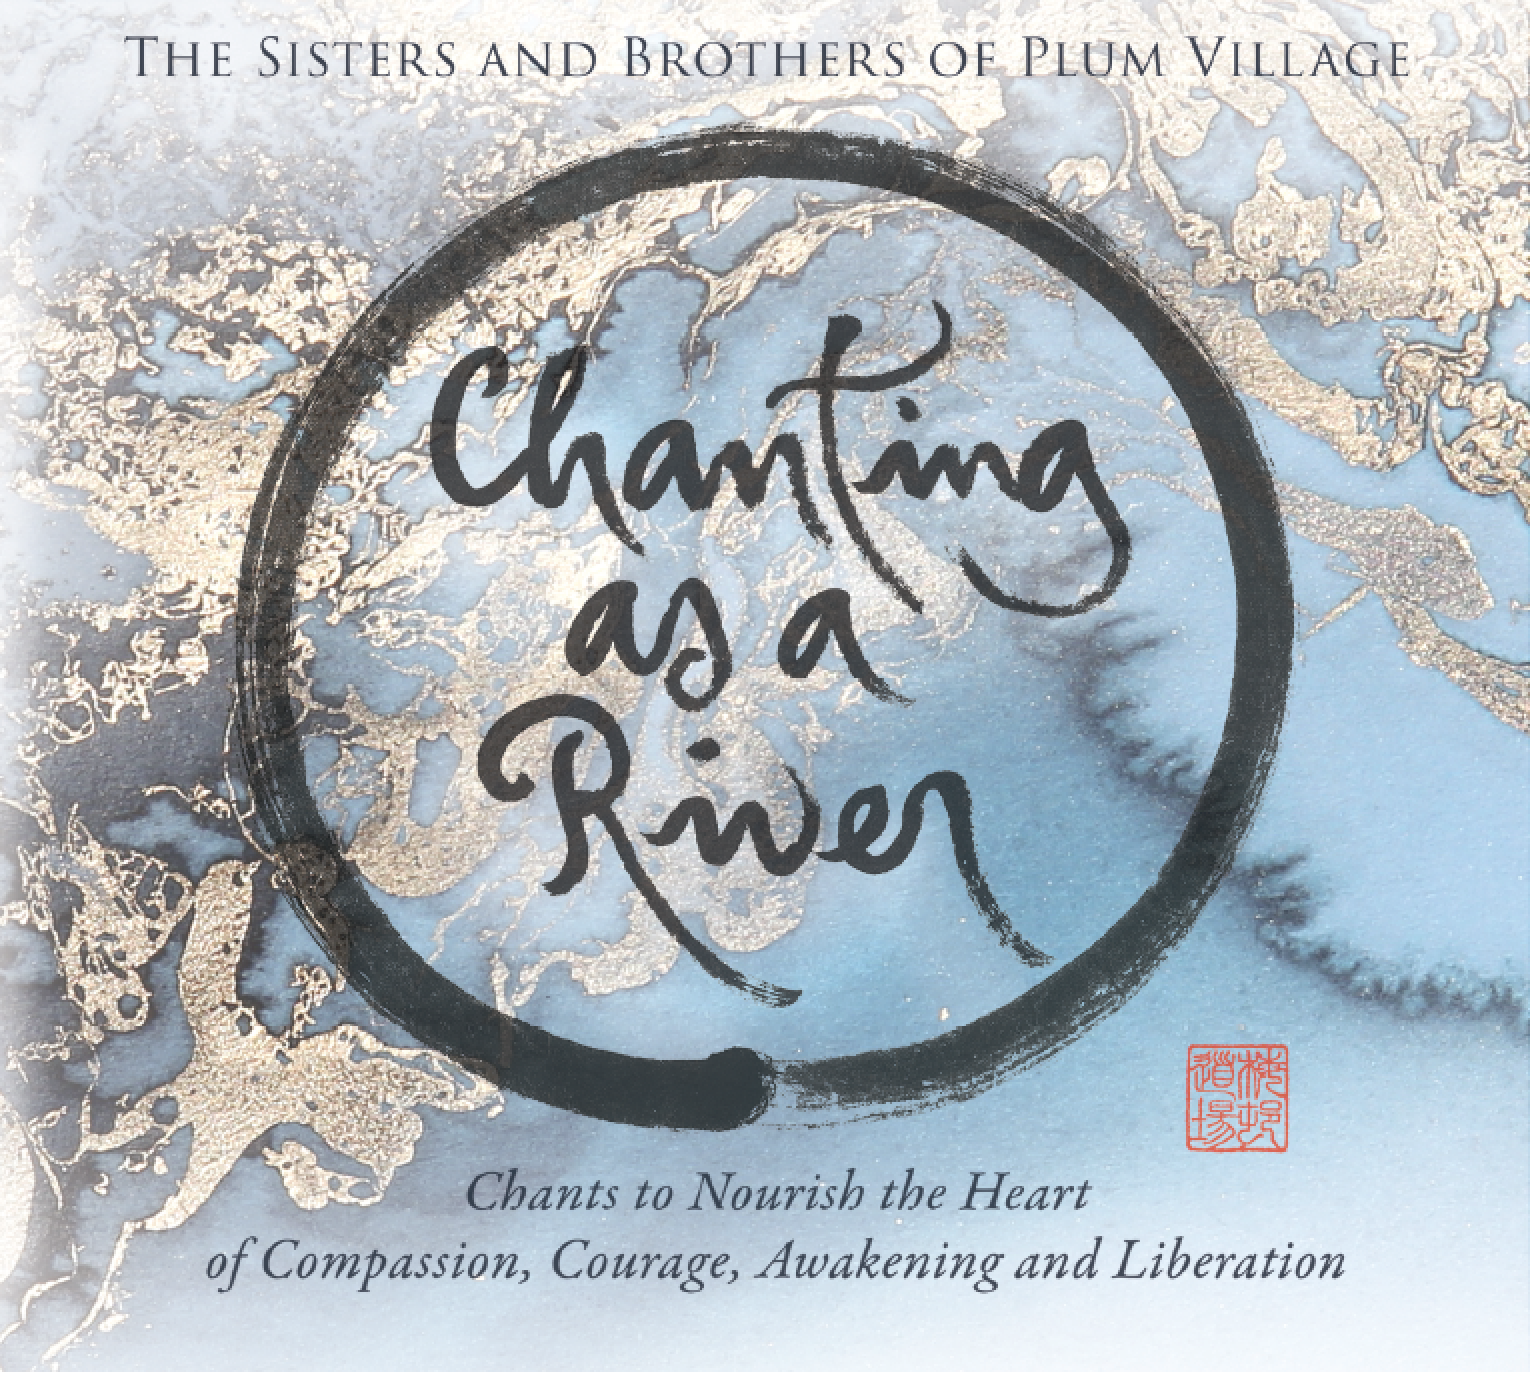 Chanting as a River - Chants to nourish the heart of compassion, courage, awakening and liberation.